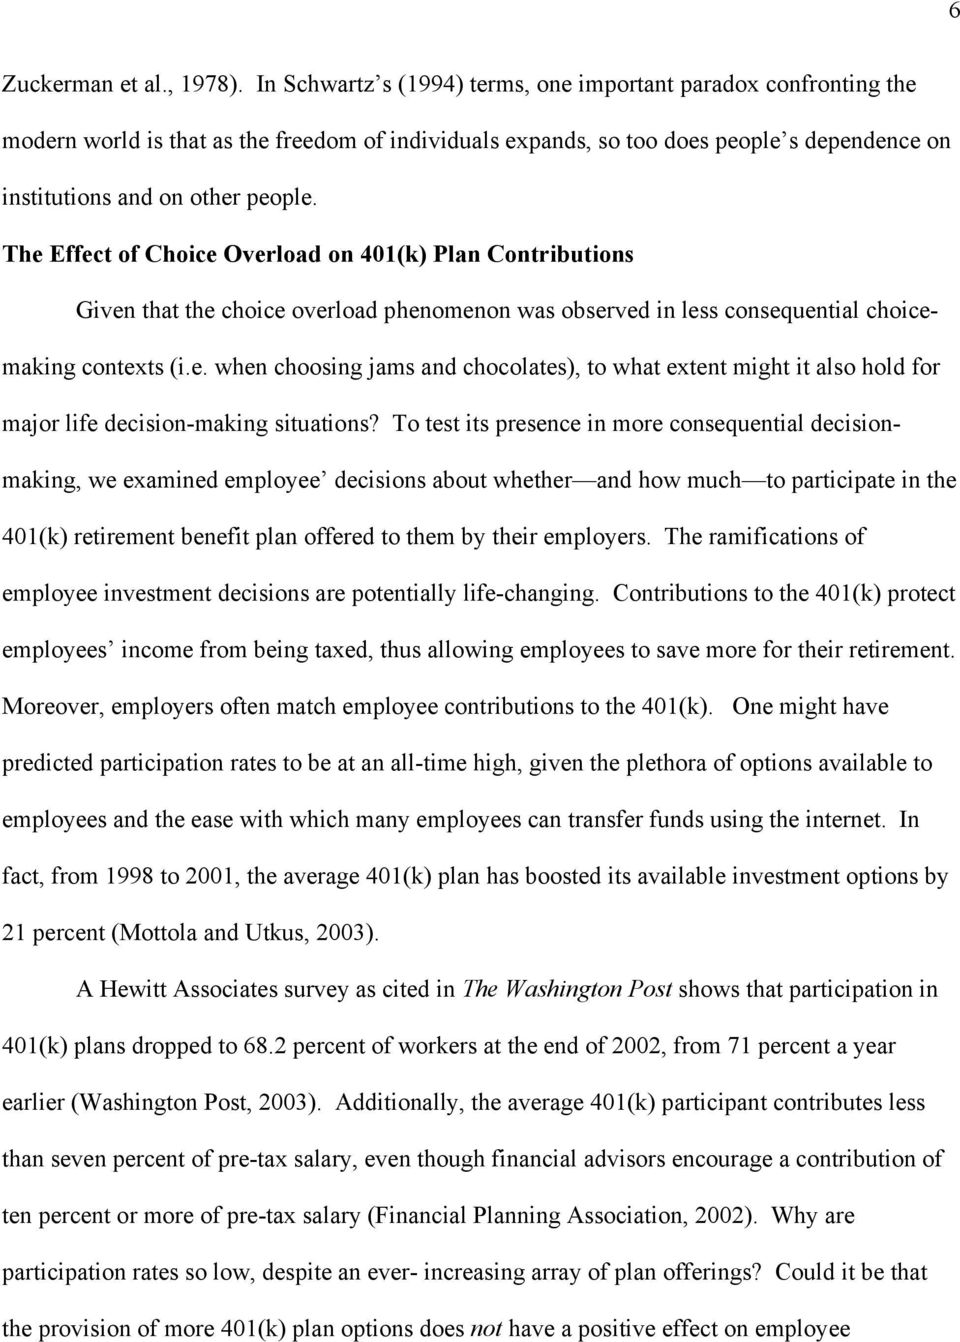 The Effect of Choice Overload on 401(k) Plan Contributions Given that the choice overload phenomenon was observed in less consequential choicemaking contexts (i.e. when choosing jams and chocolates), to what extent might it also hold for major life decision-making situations?